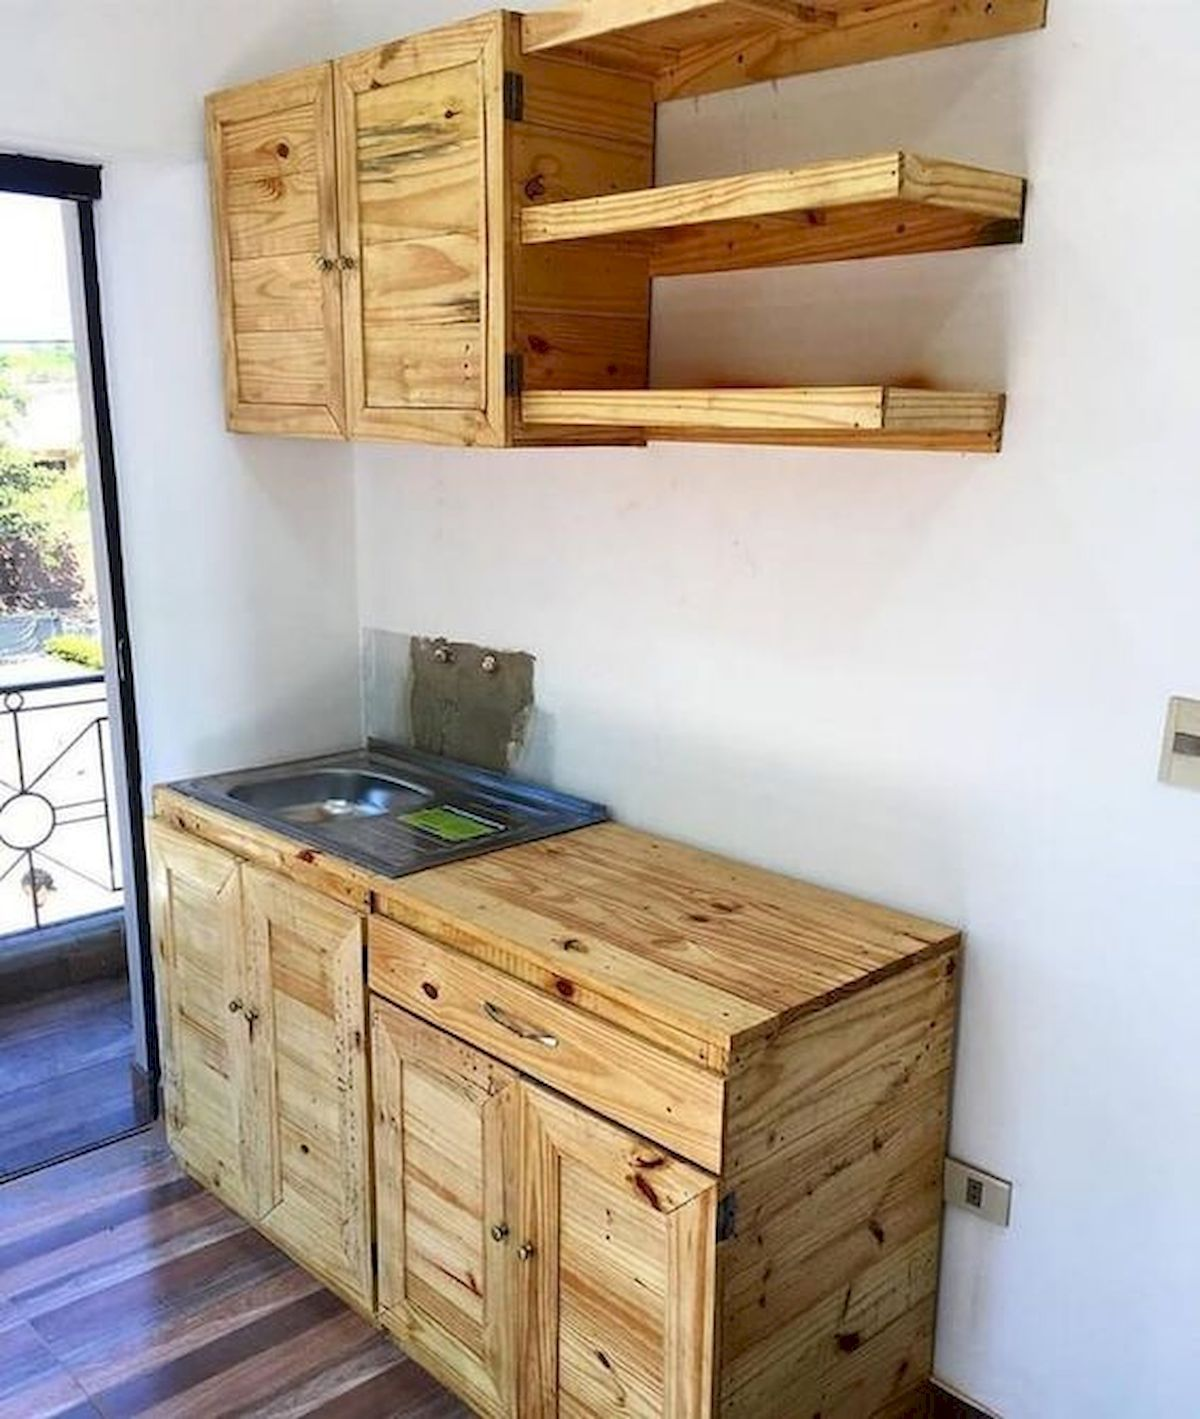 50 Amazing Diy Pallet Kitchen Cabinets Design Ideas 36 Doityourzelf In 2020 Pallet Kitchen Cabinets Pallet Kitchen Pallet Diy